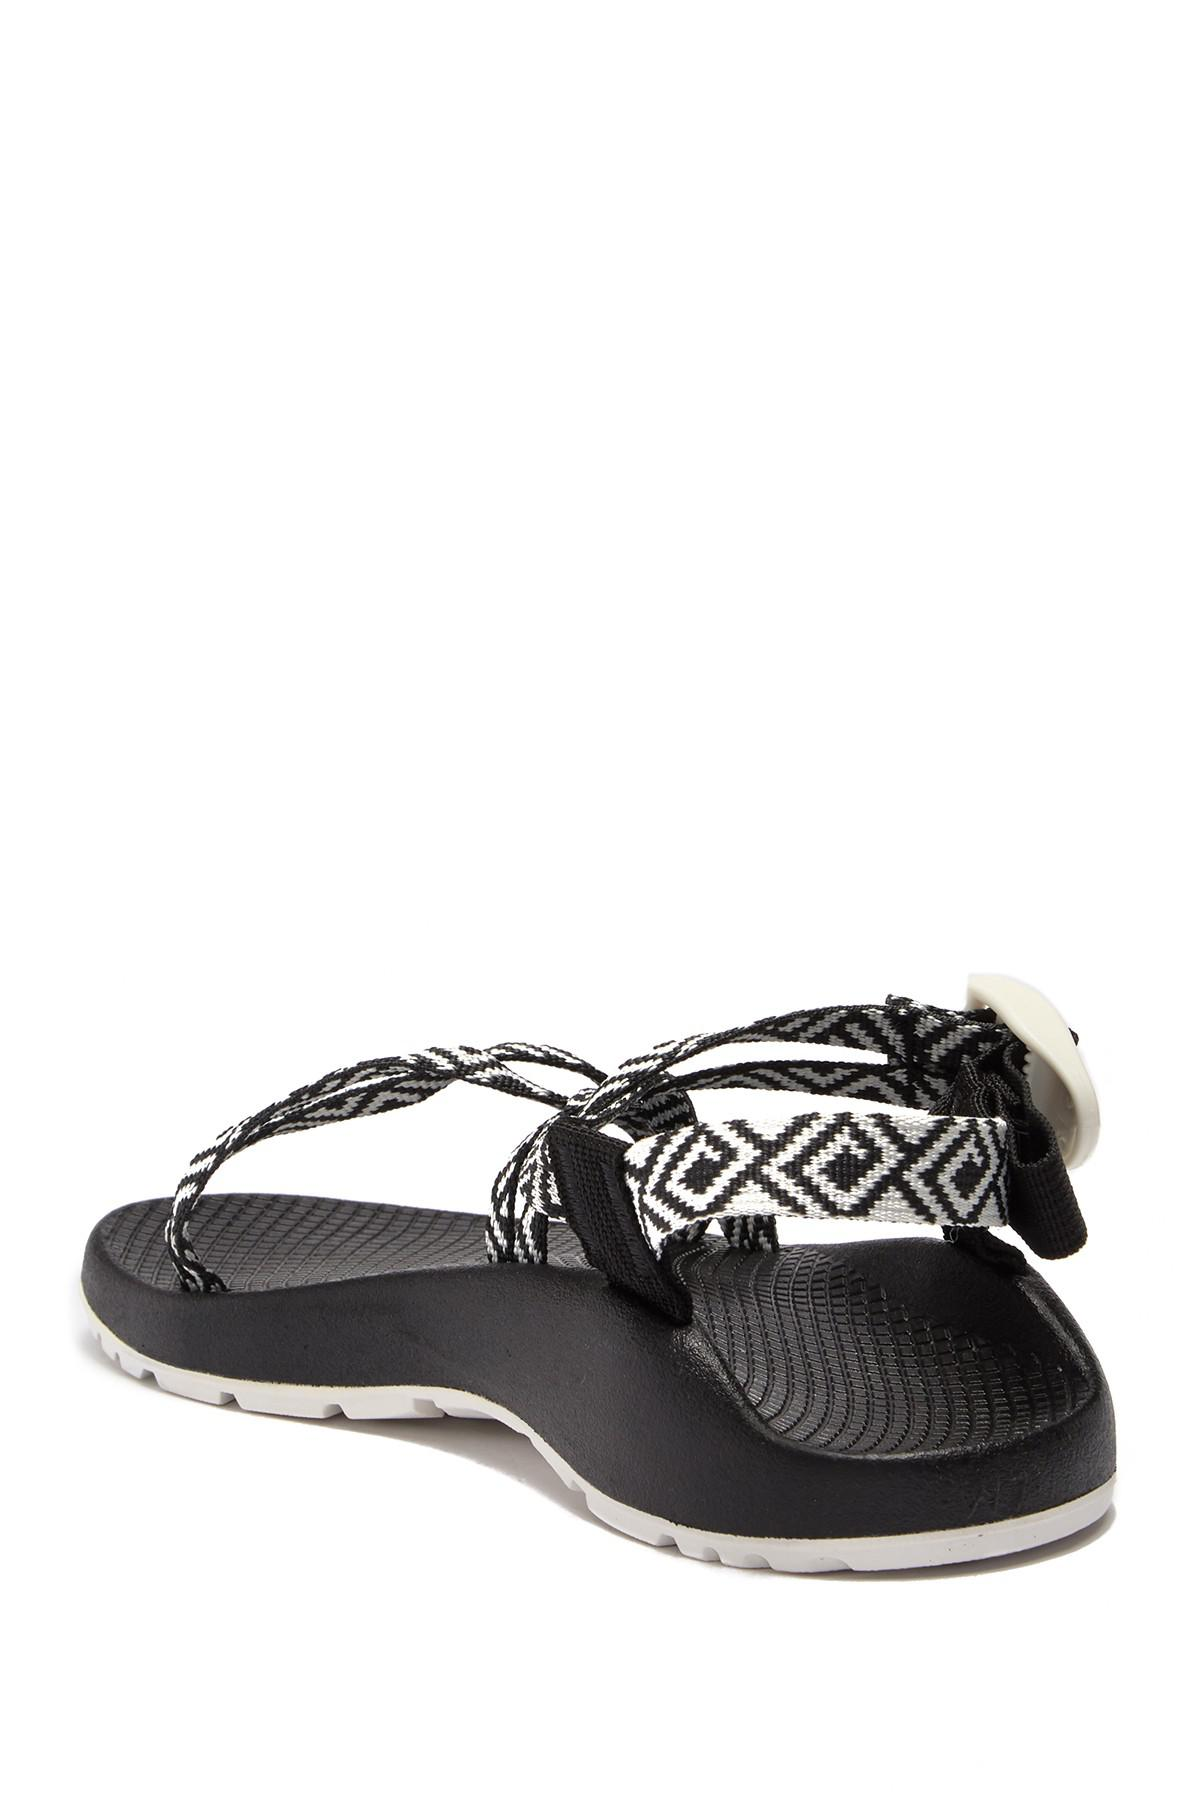 85f106eabc0 Lyst - Chaco Zx 1 Classic Sandal in Black - Save 38.46153846153846%